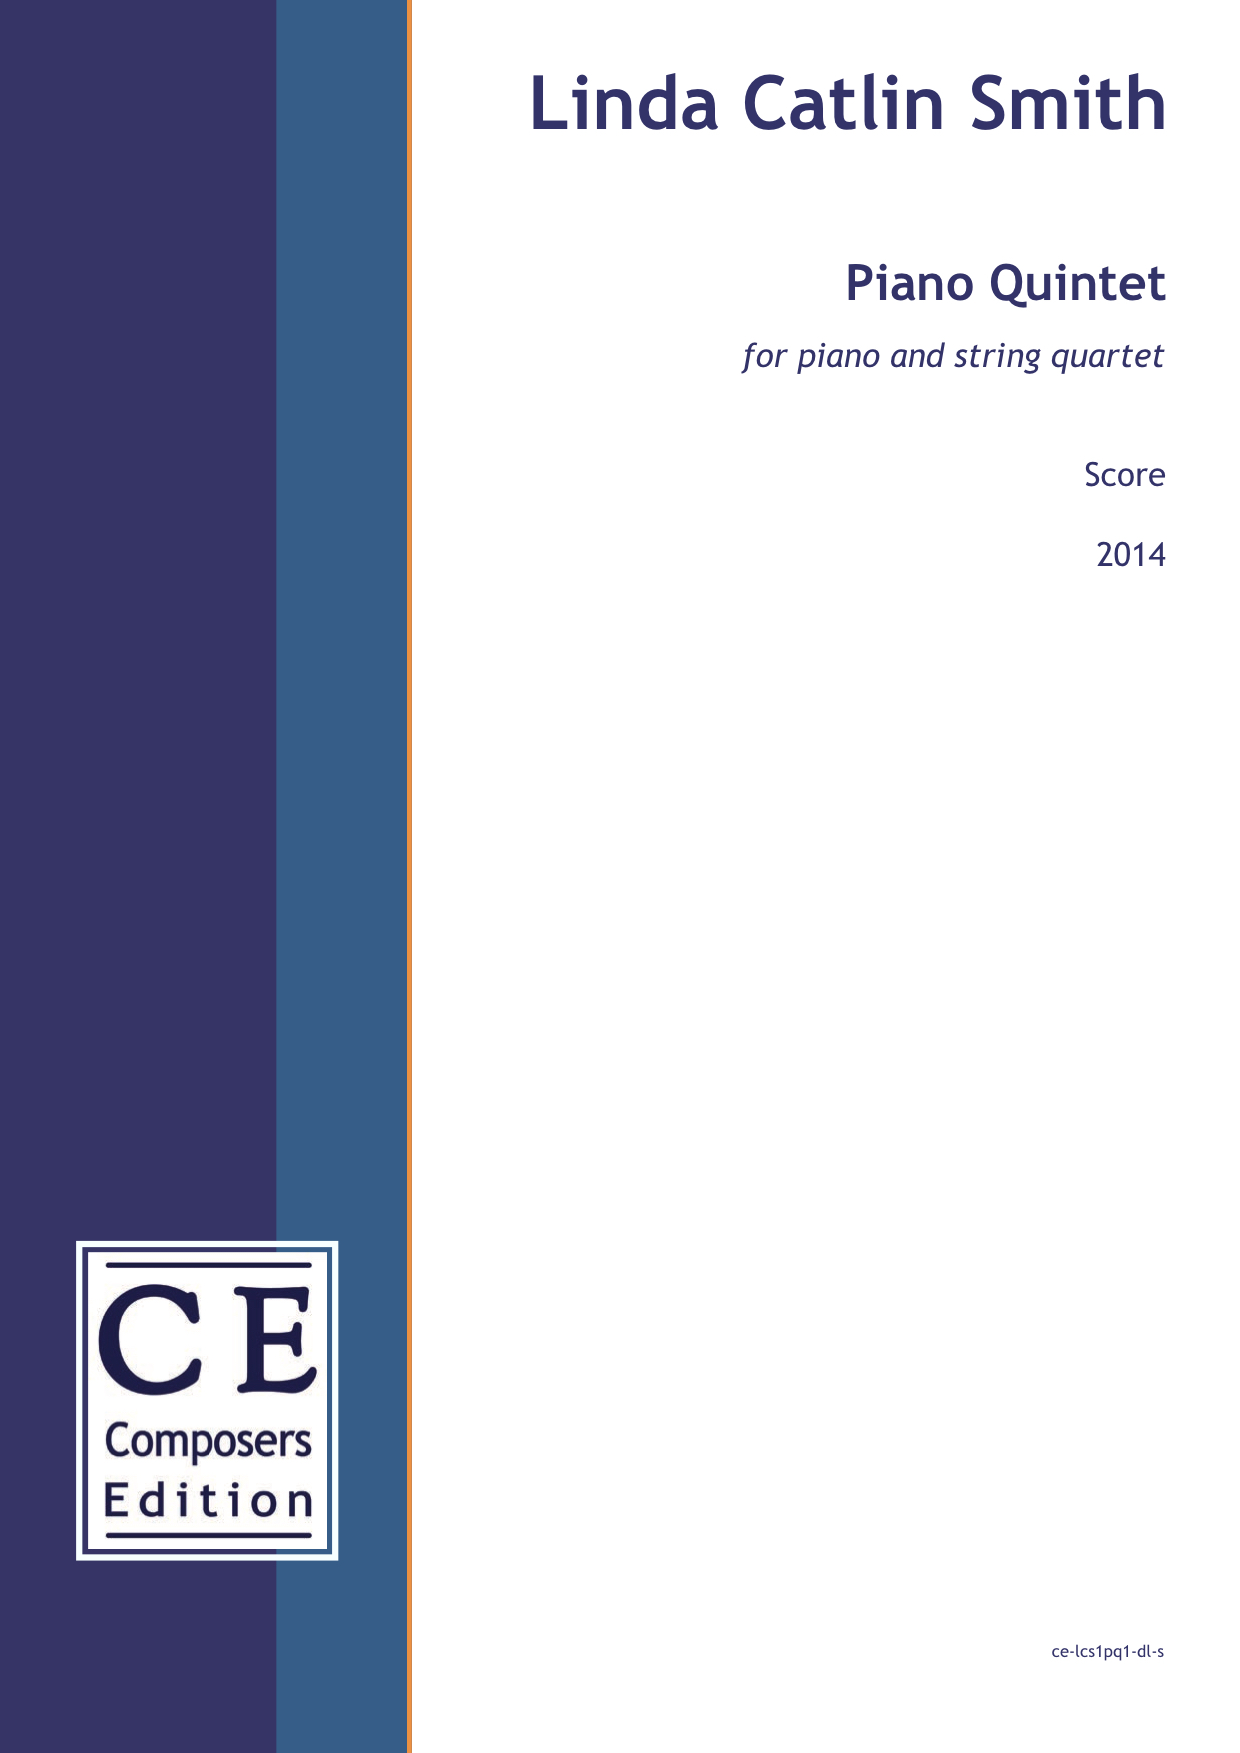 Linda Catlin Smith: Piano Quintet for piano and string quartet